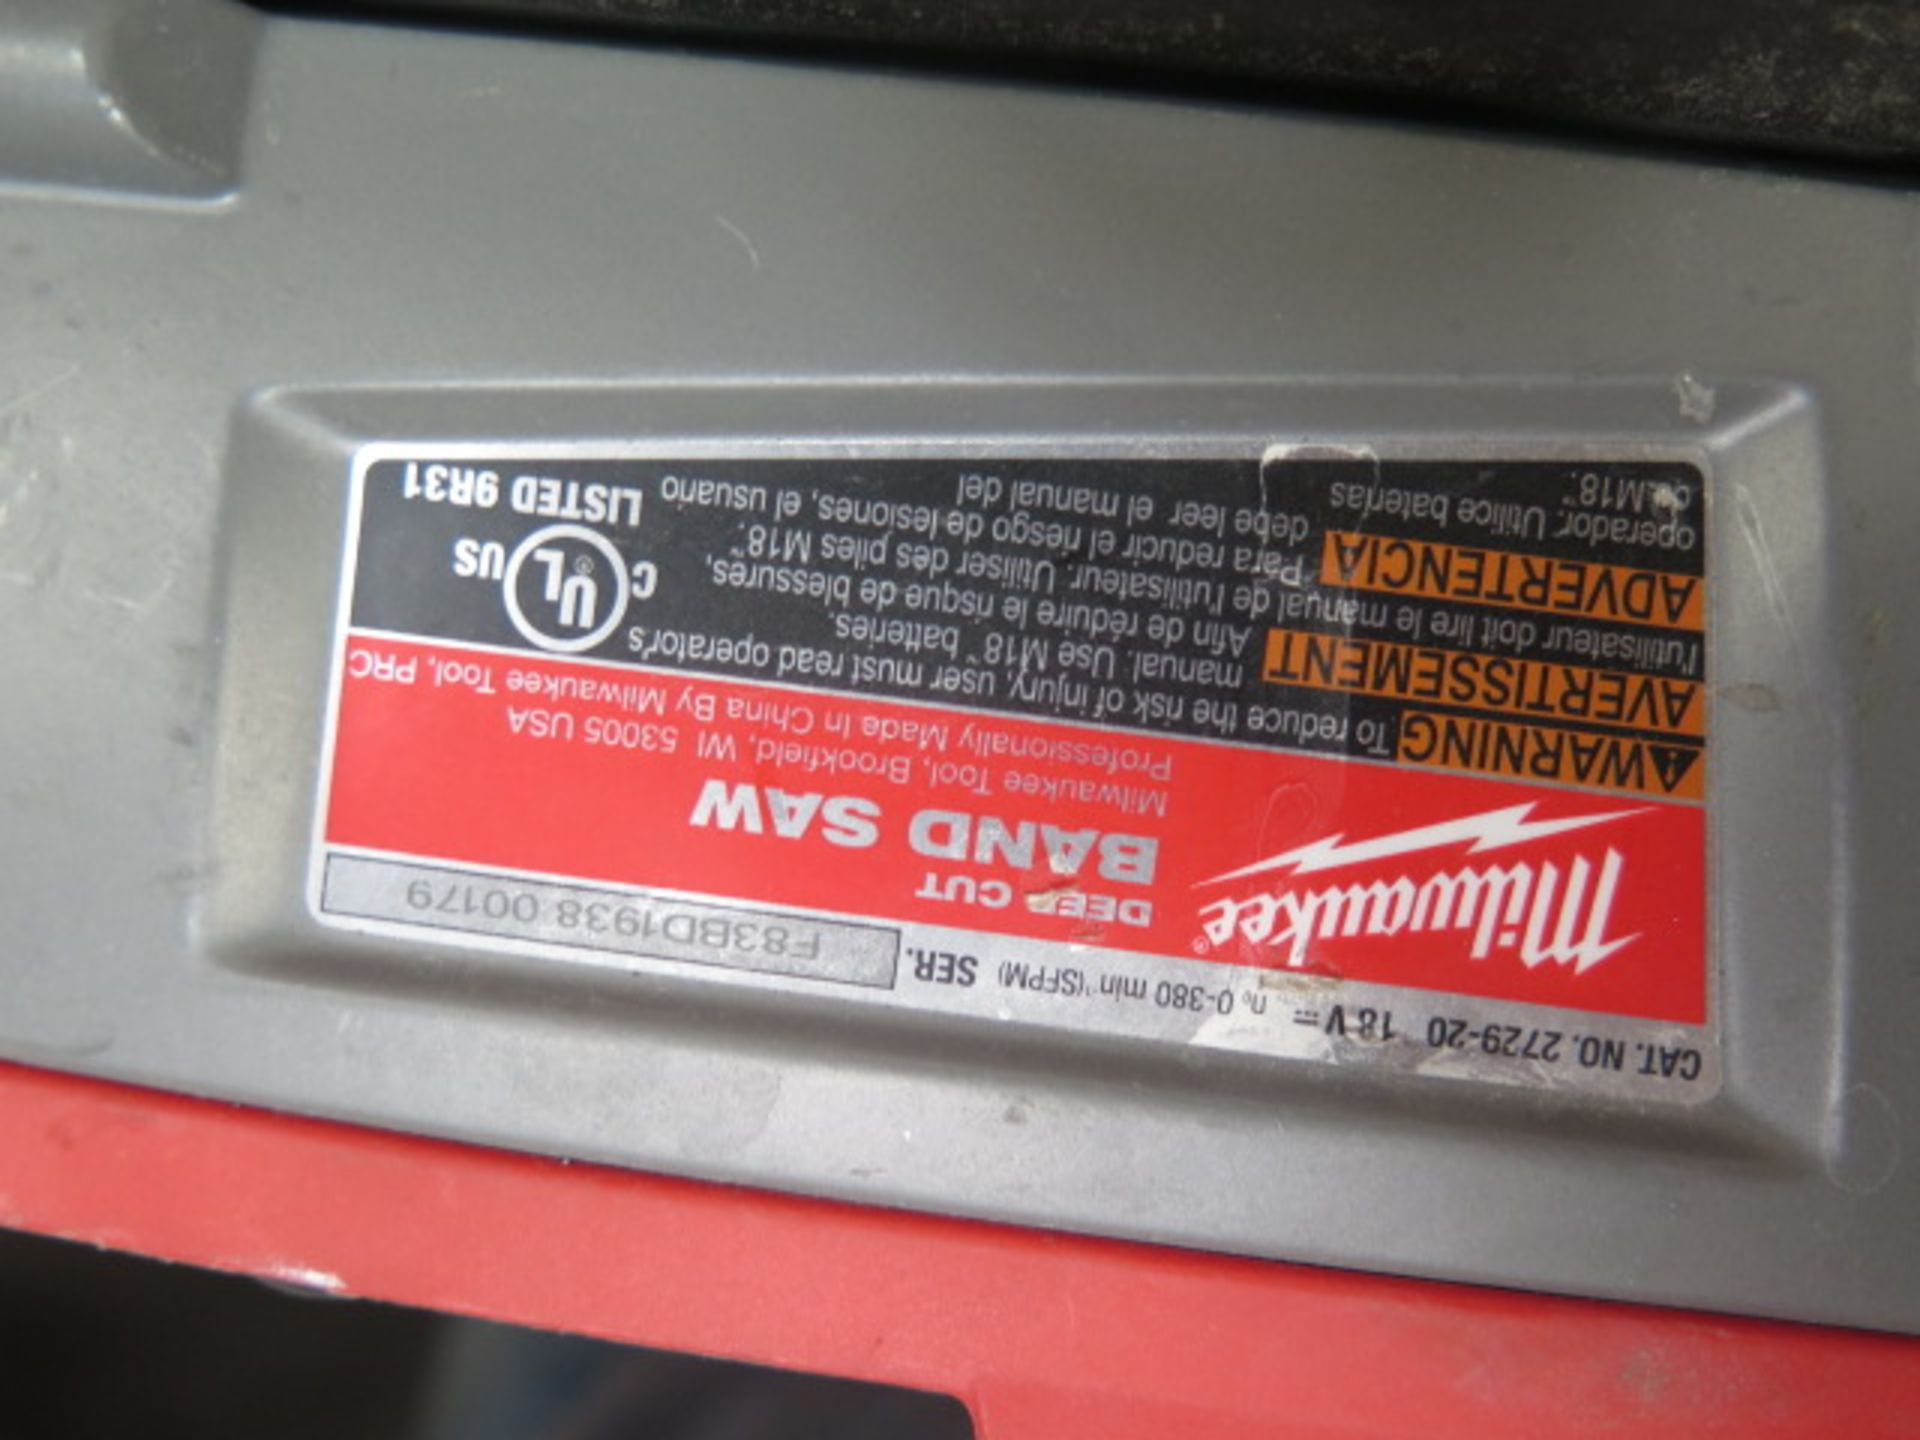 Milwaukee 18 Volt Portable Band Saws (3) (SOLD AS-IS - NO WARRANTY) - Image 7 of 7